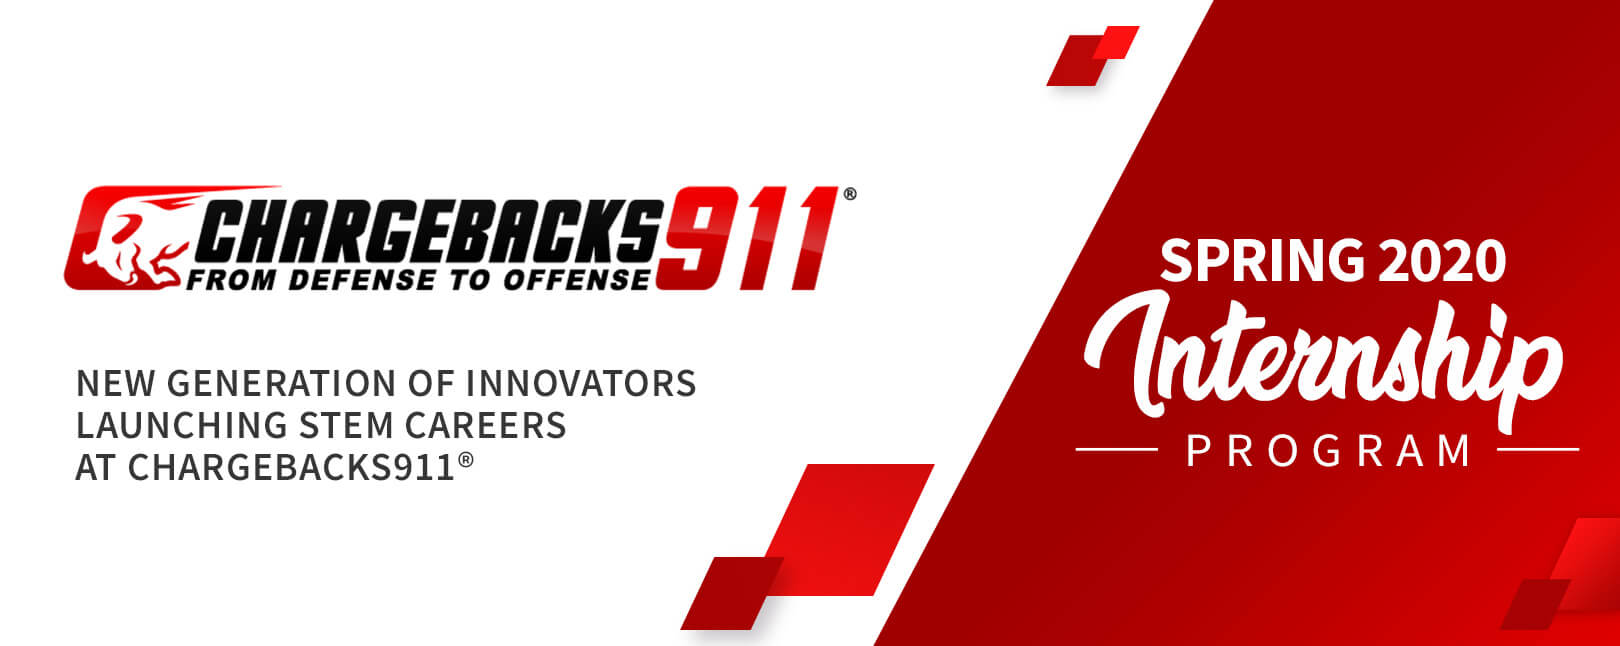 New Generation of Innovators Launching STEM Careers at Chargebacks911